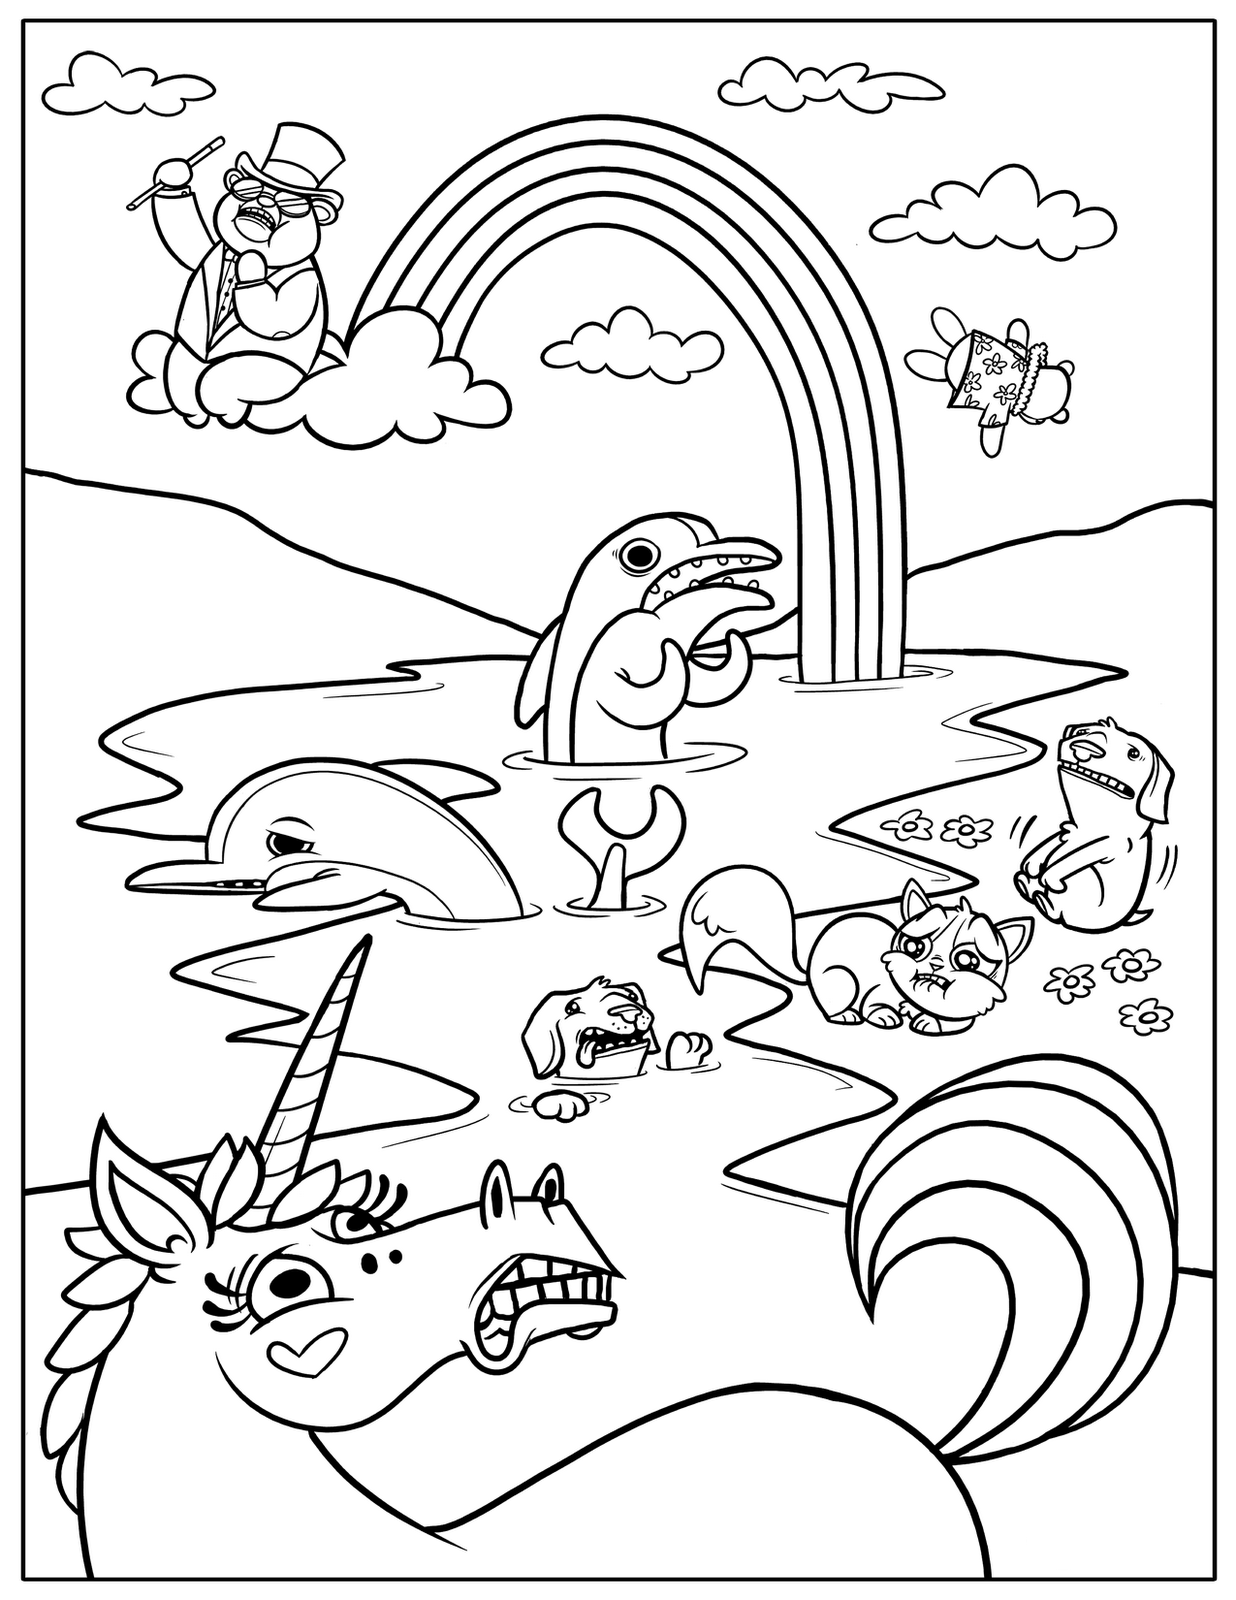 free printable kids coloring pages free printable puppies coloring pages for kids printable kids pages free coloring